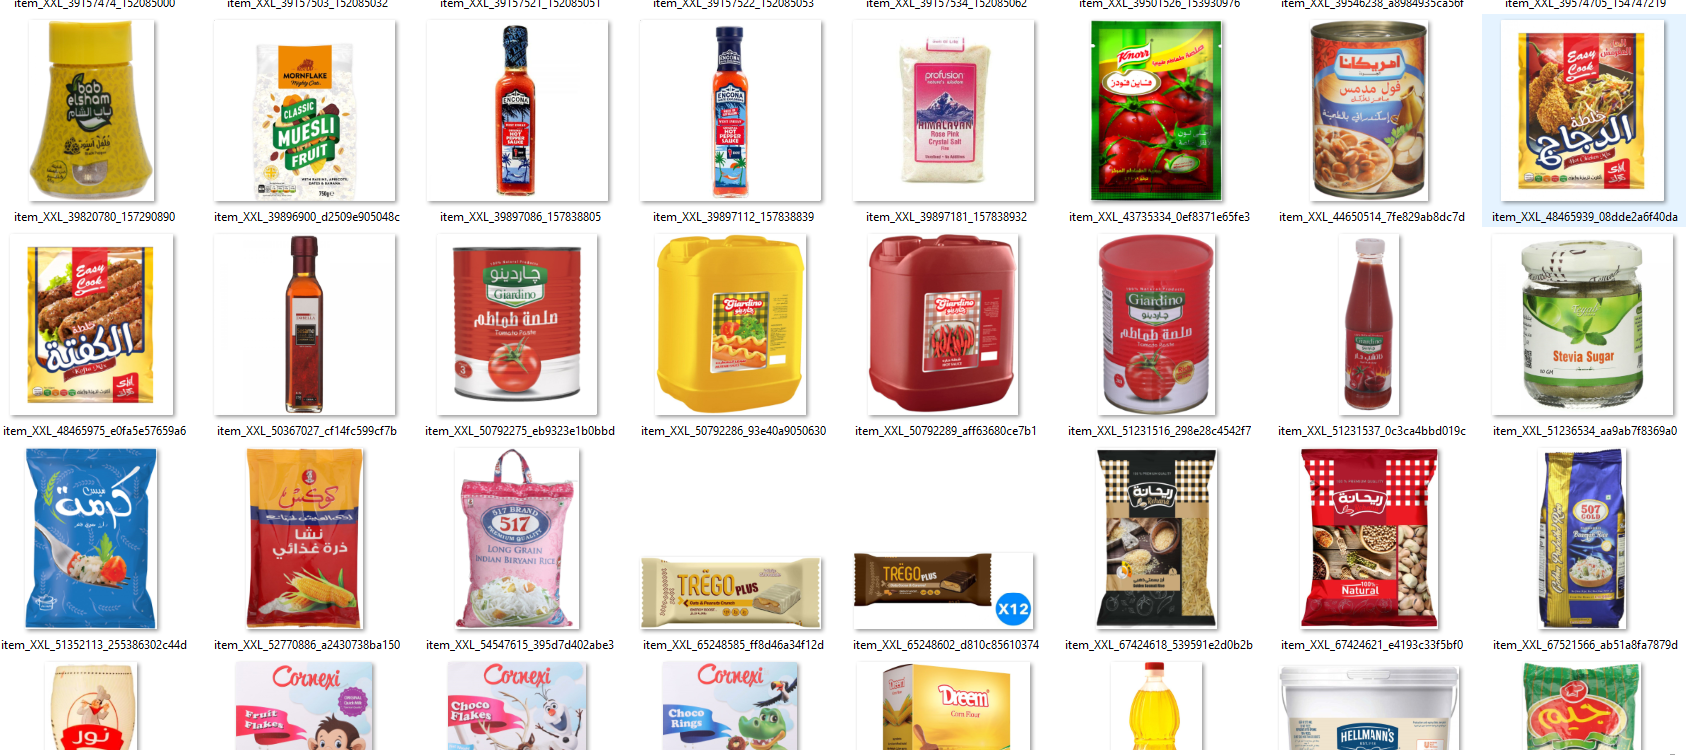 Mid-quality grocery store and supermarket image set